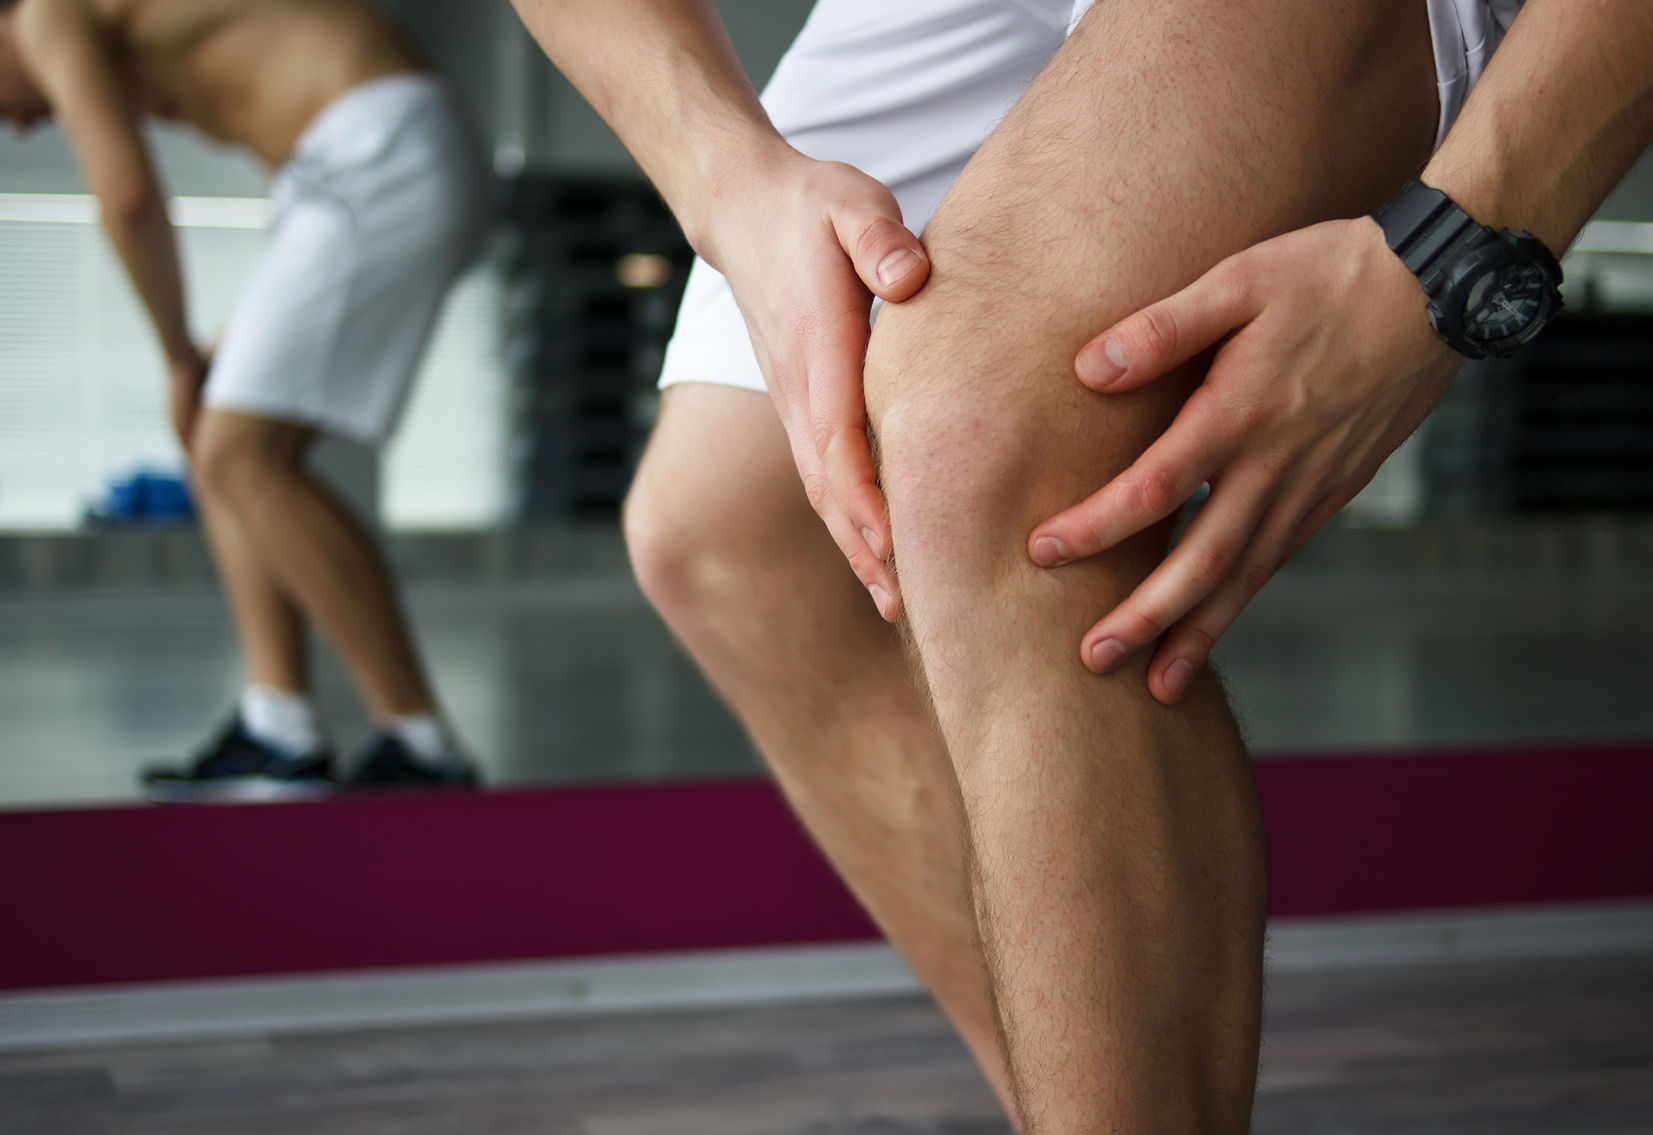 Dealing With Patellofemoral Pain Syndrome